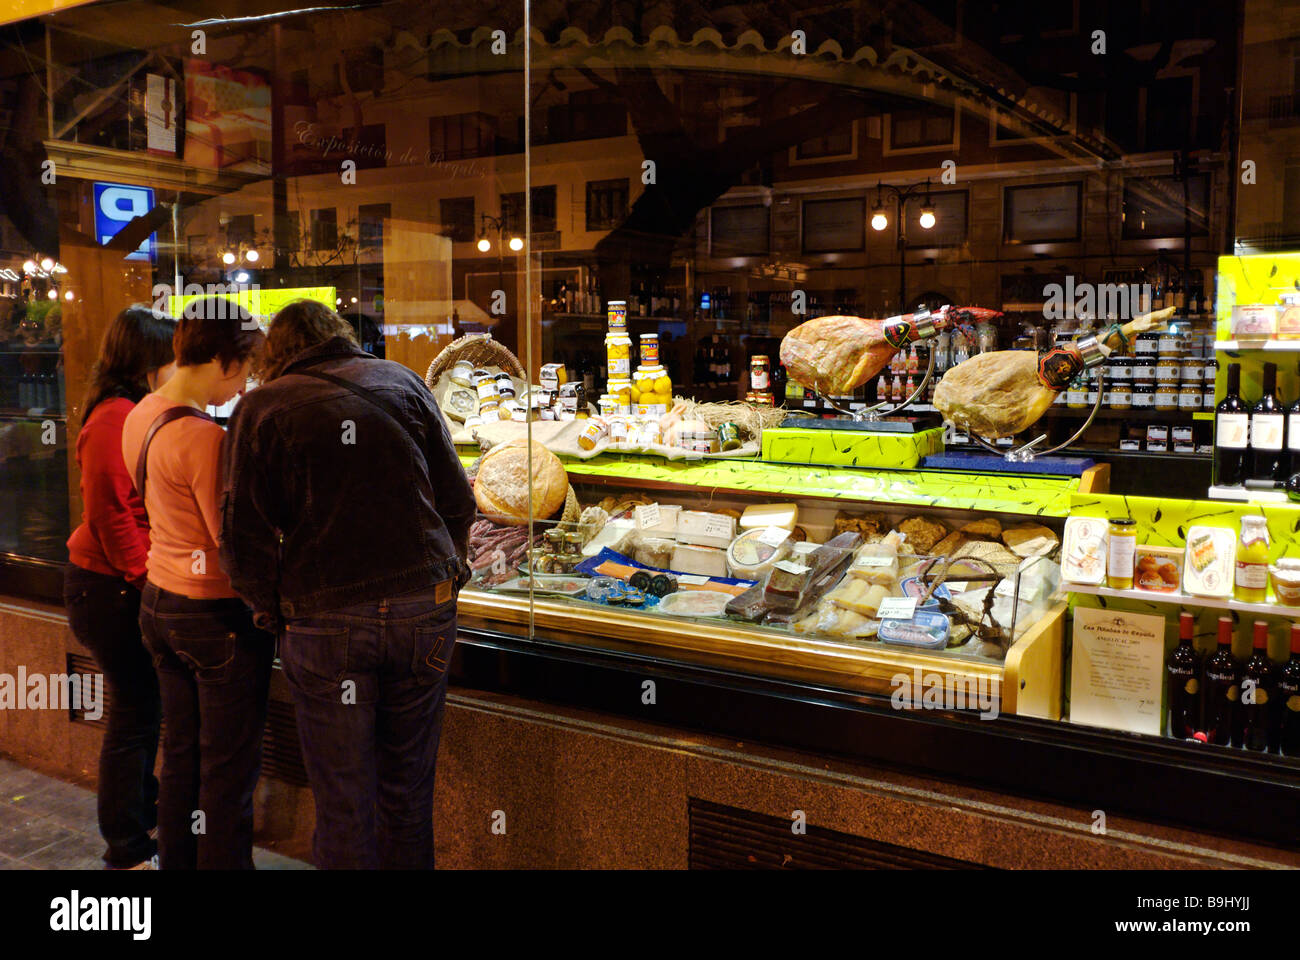 People window shopping at Spanish gourmet delicatessen food shop in the historical city centre of Valencia Spain - Stock Image